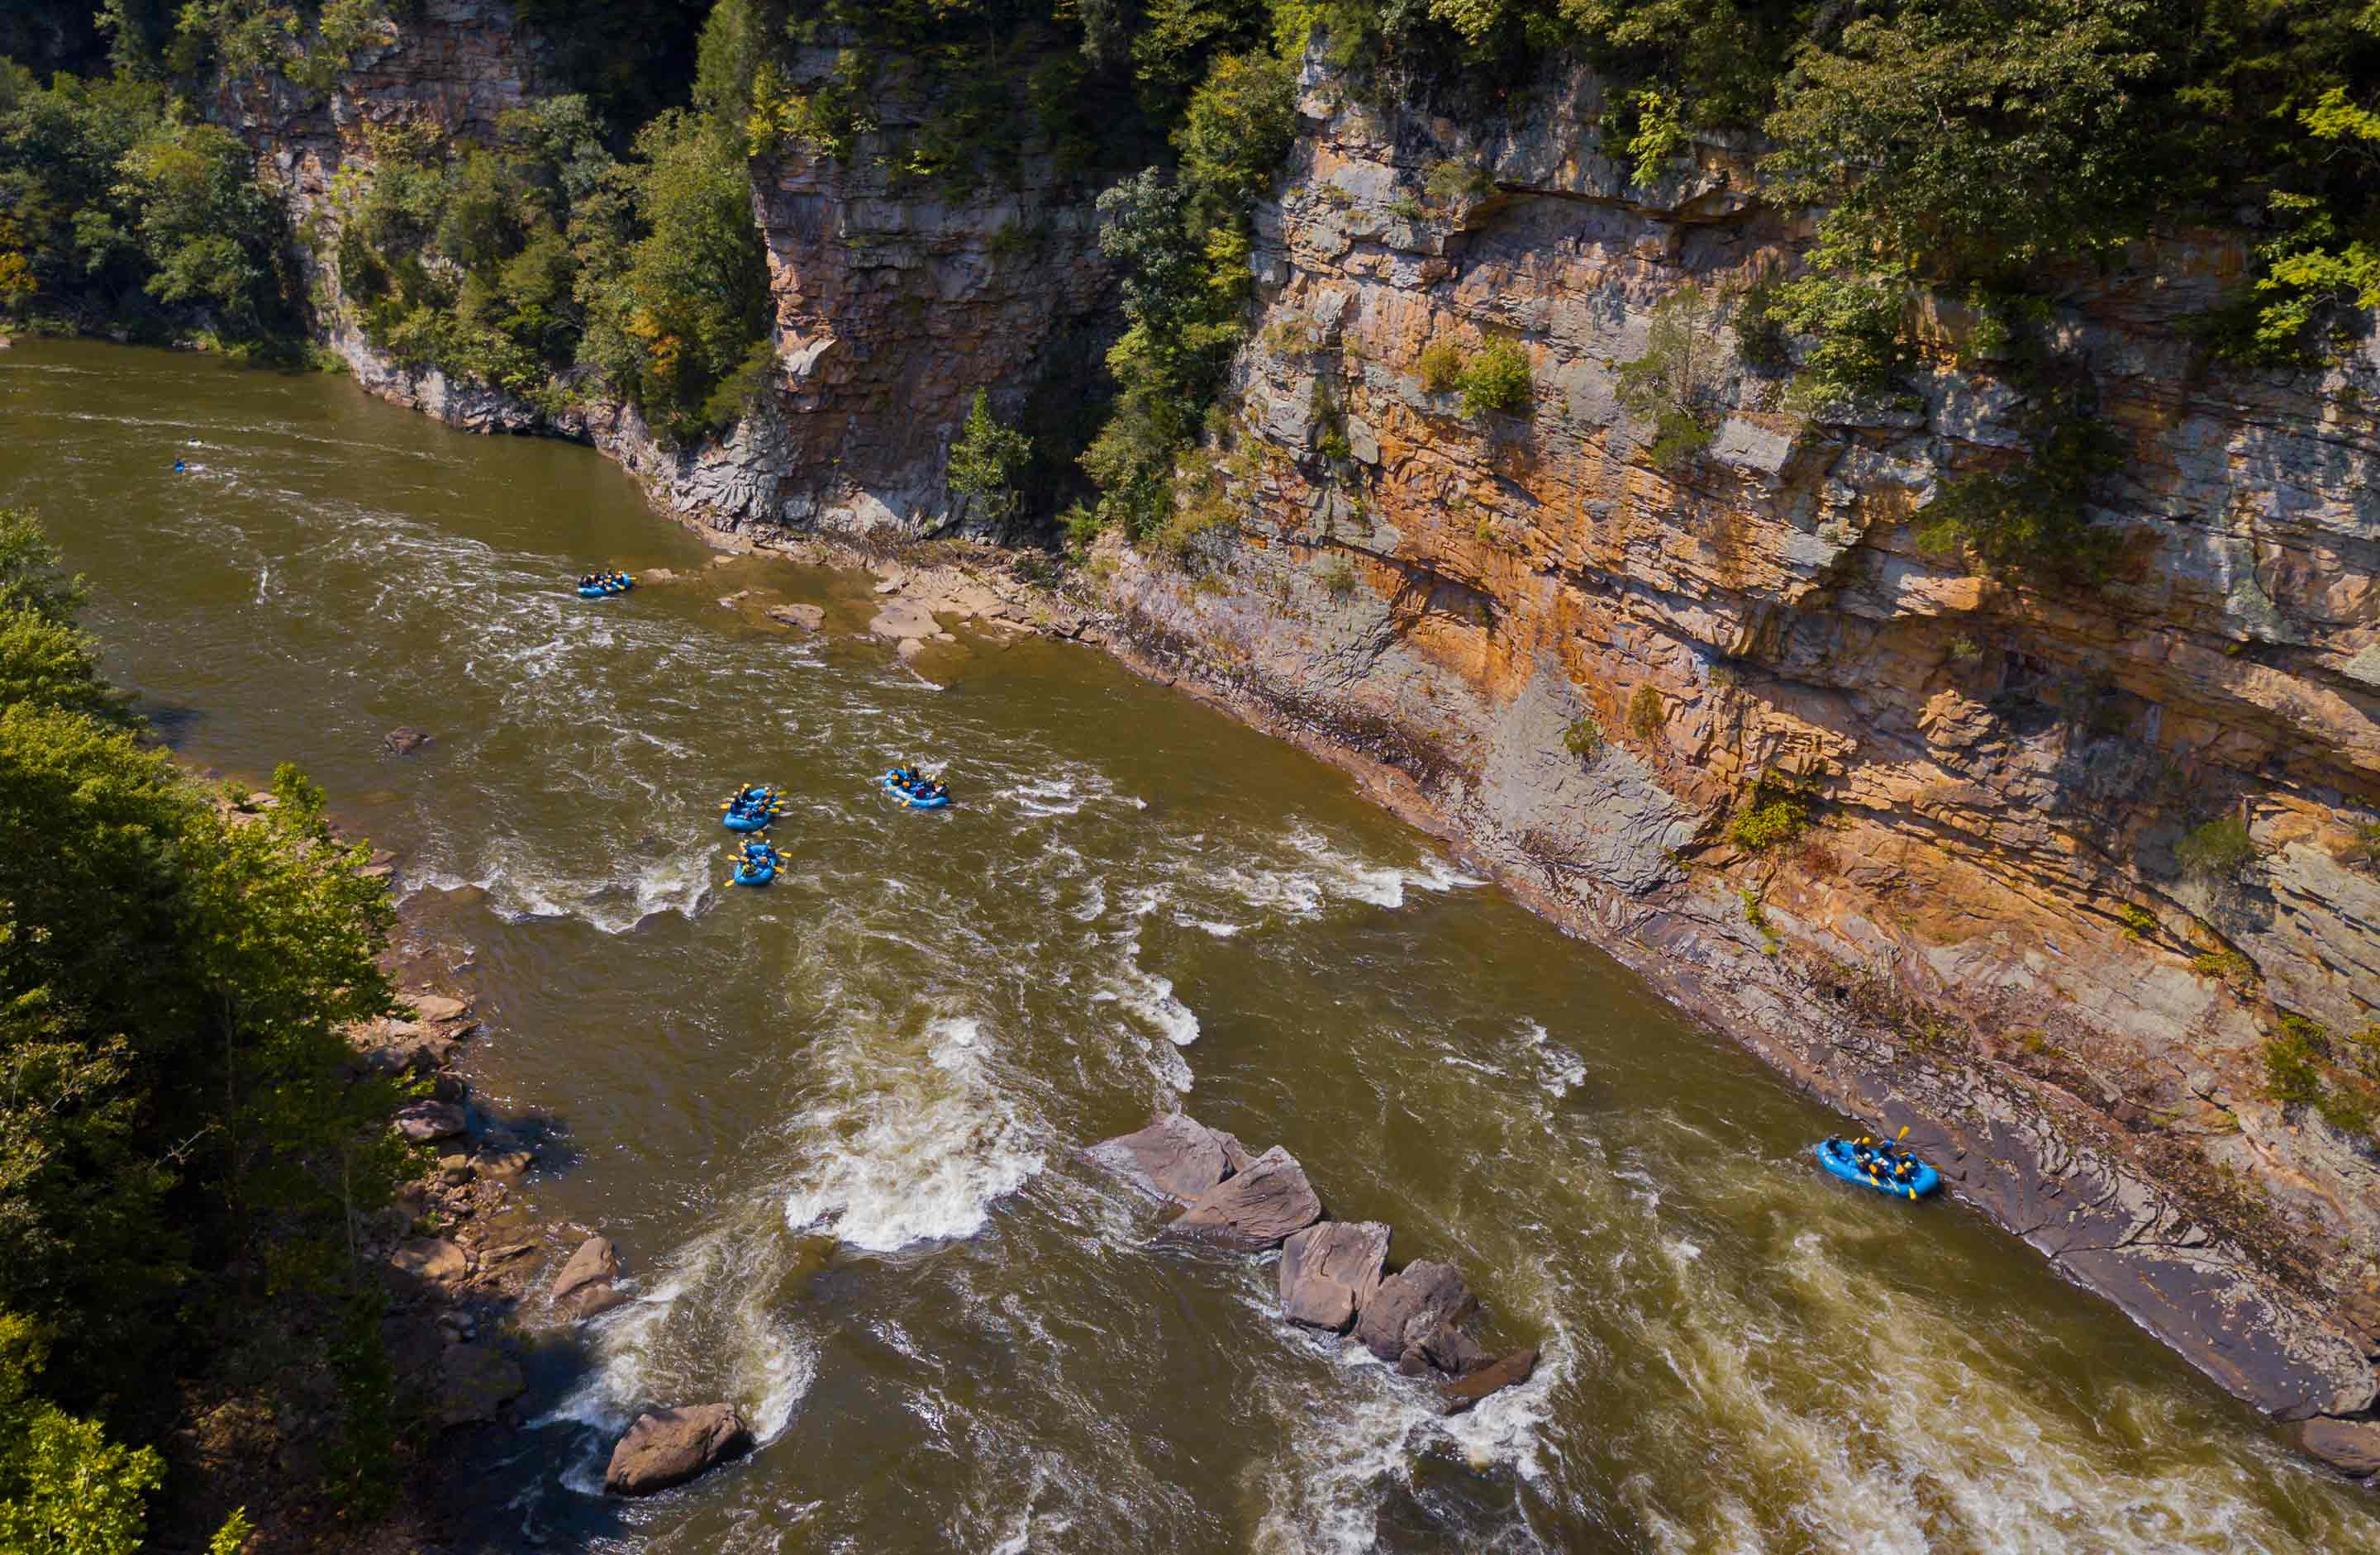 The Lower Gauley in West Virginia